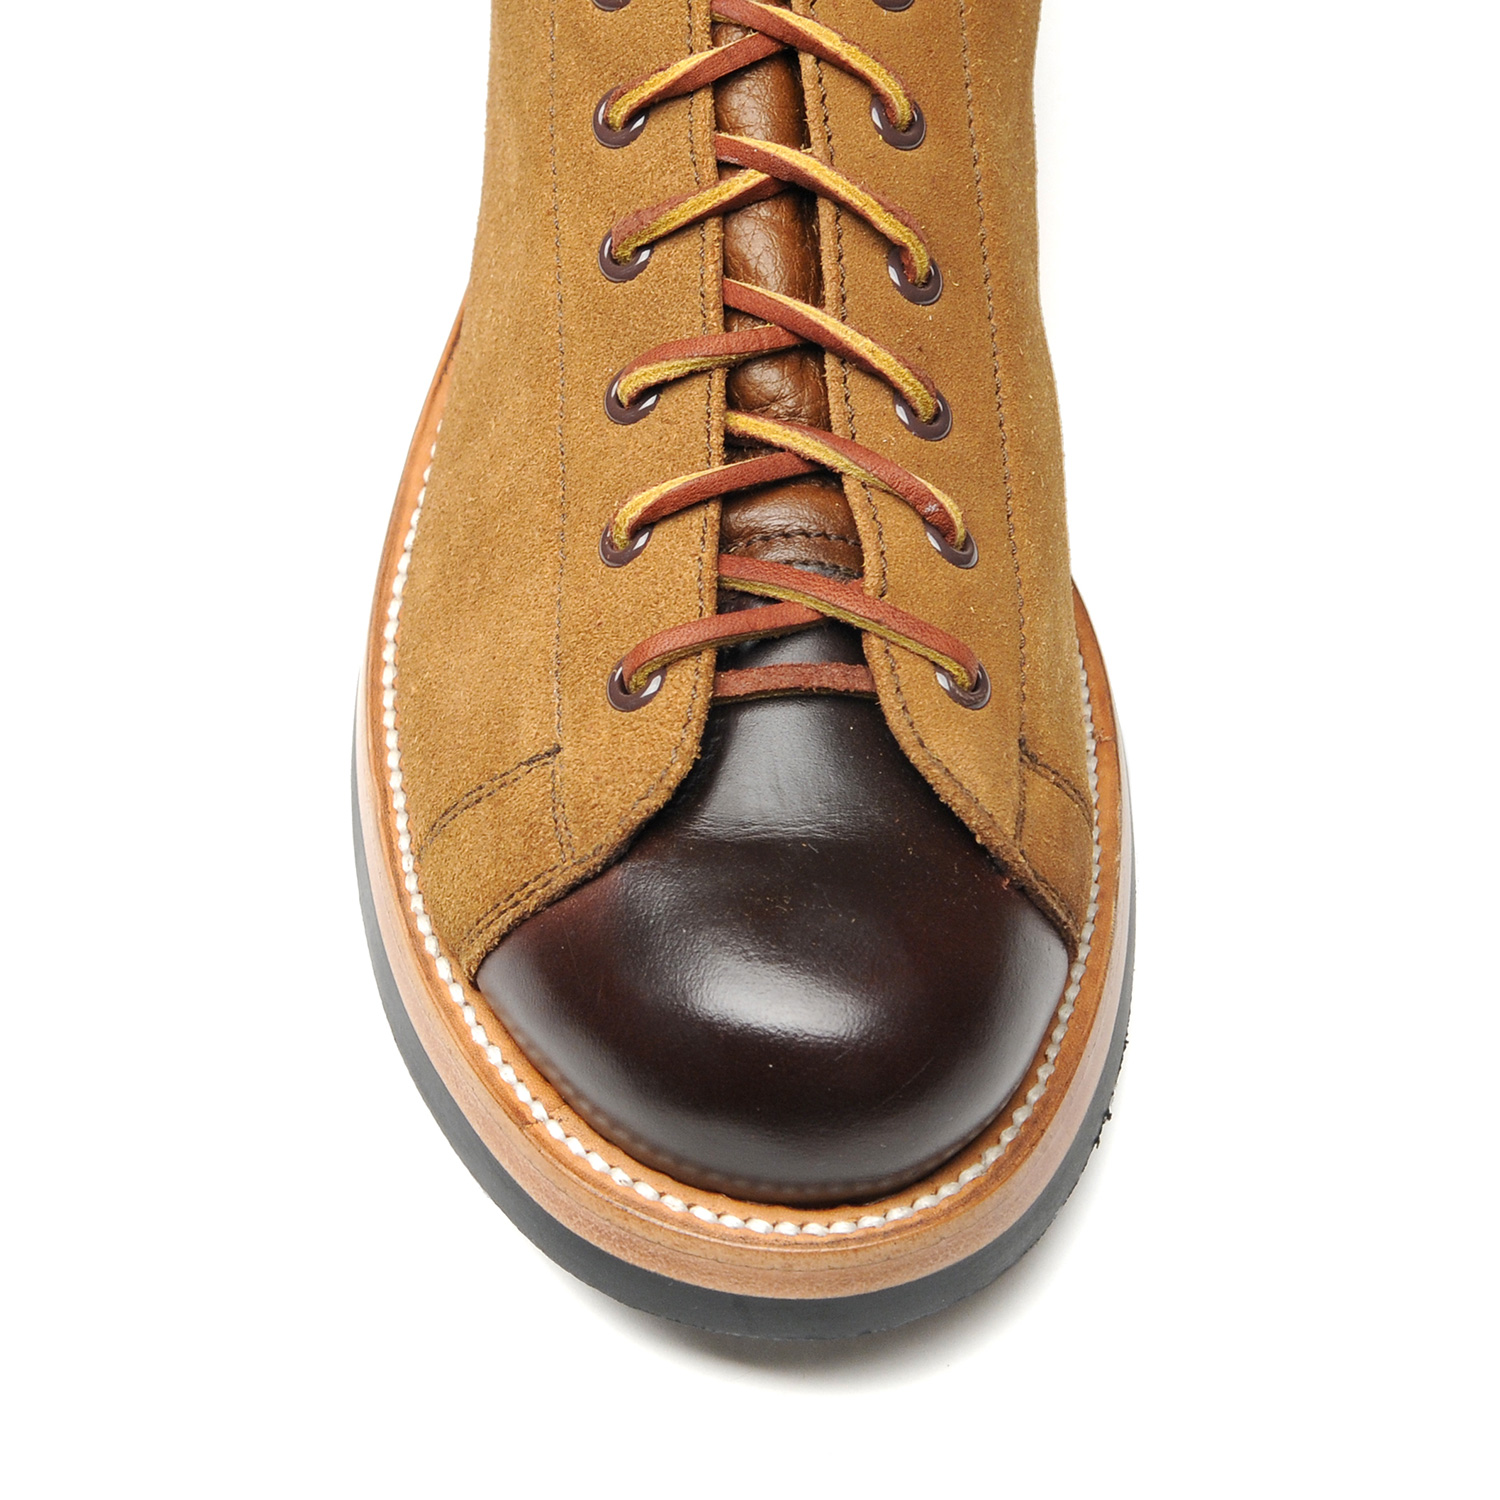 POLISH-WORK-BOOT,-CC-BROWN-X-G-BROWN-SUEDE,-FRONT.jpg